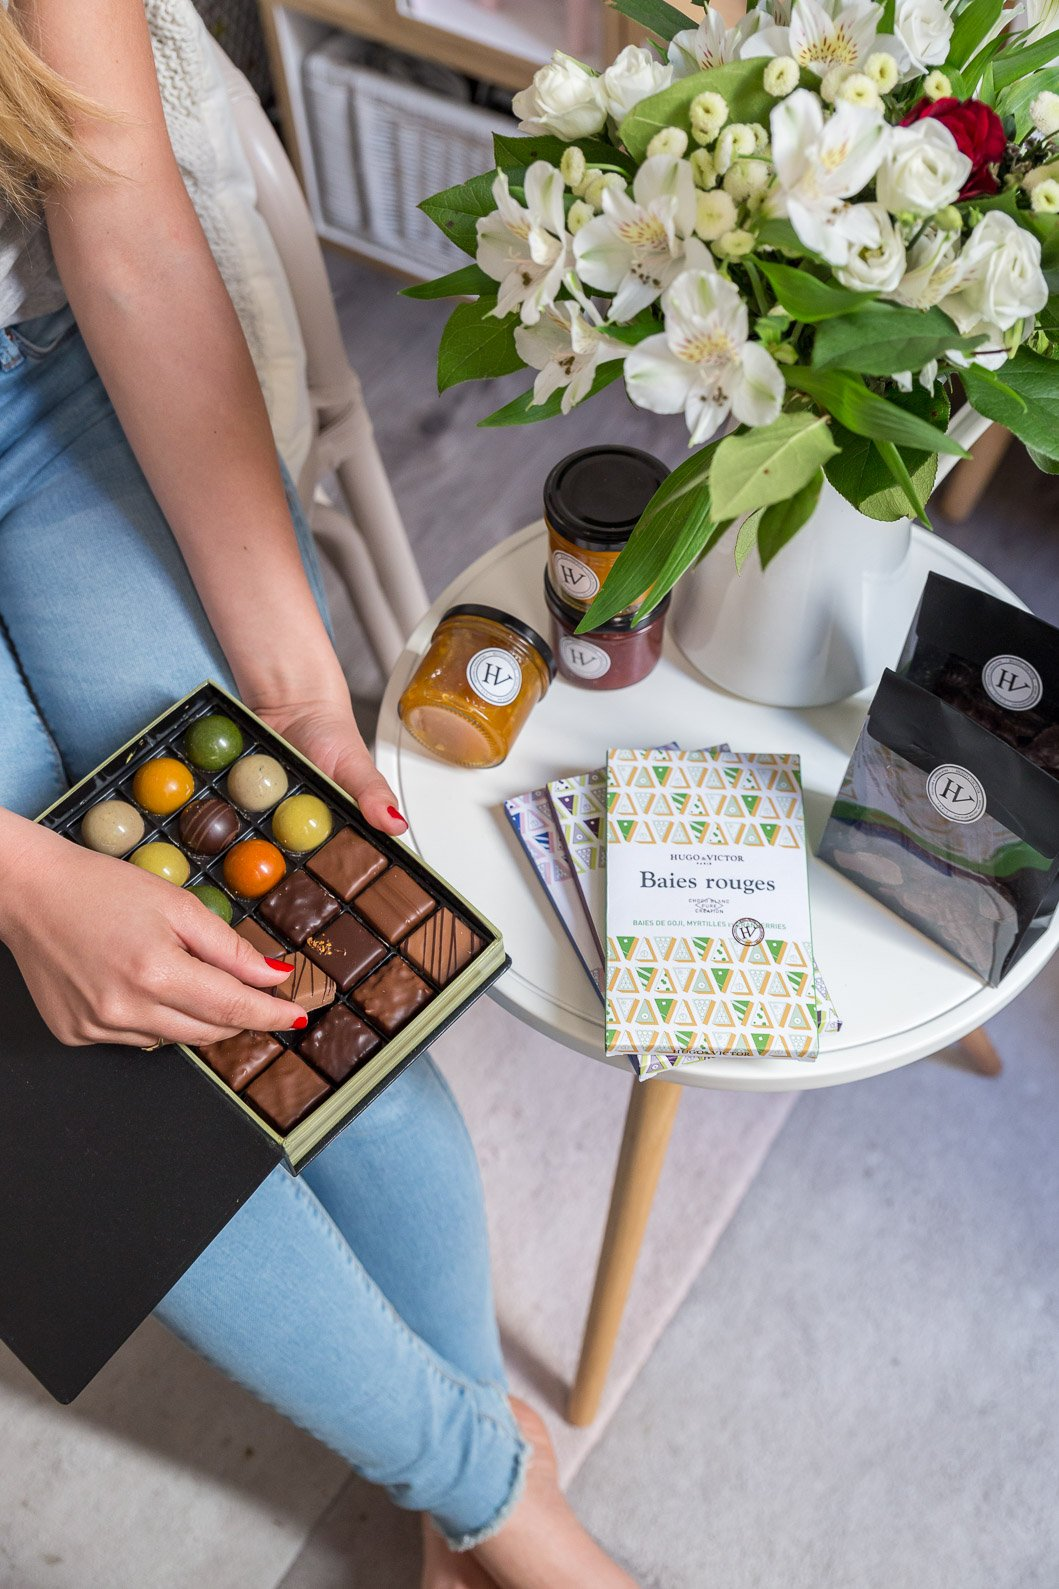 Blog lifestyle chocolat victor & hugo